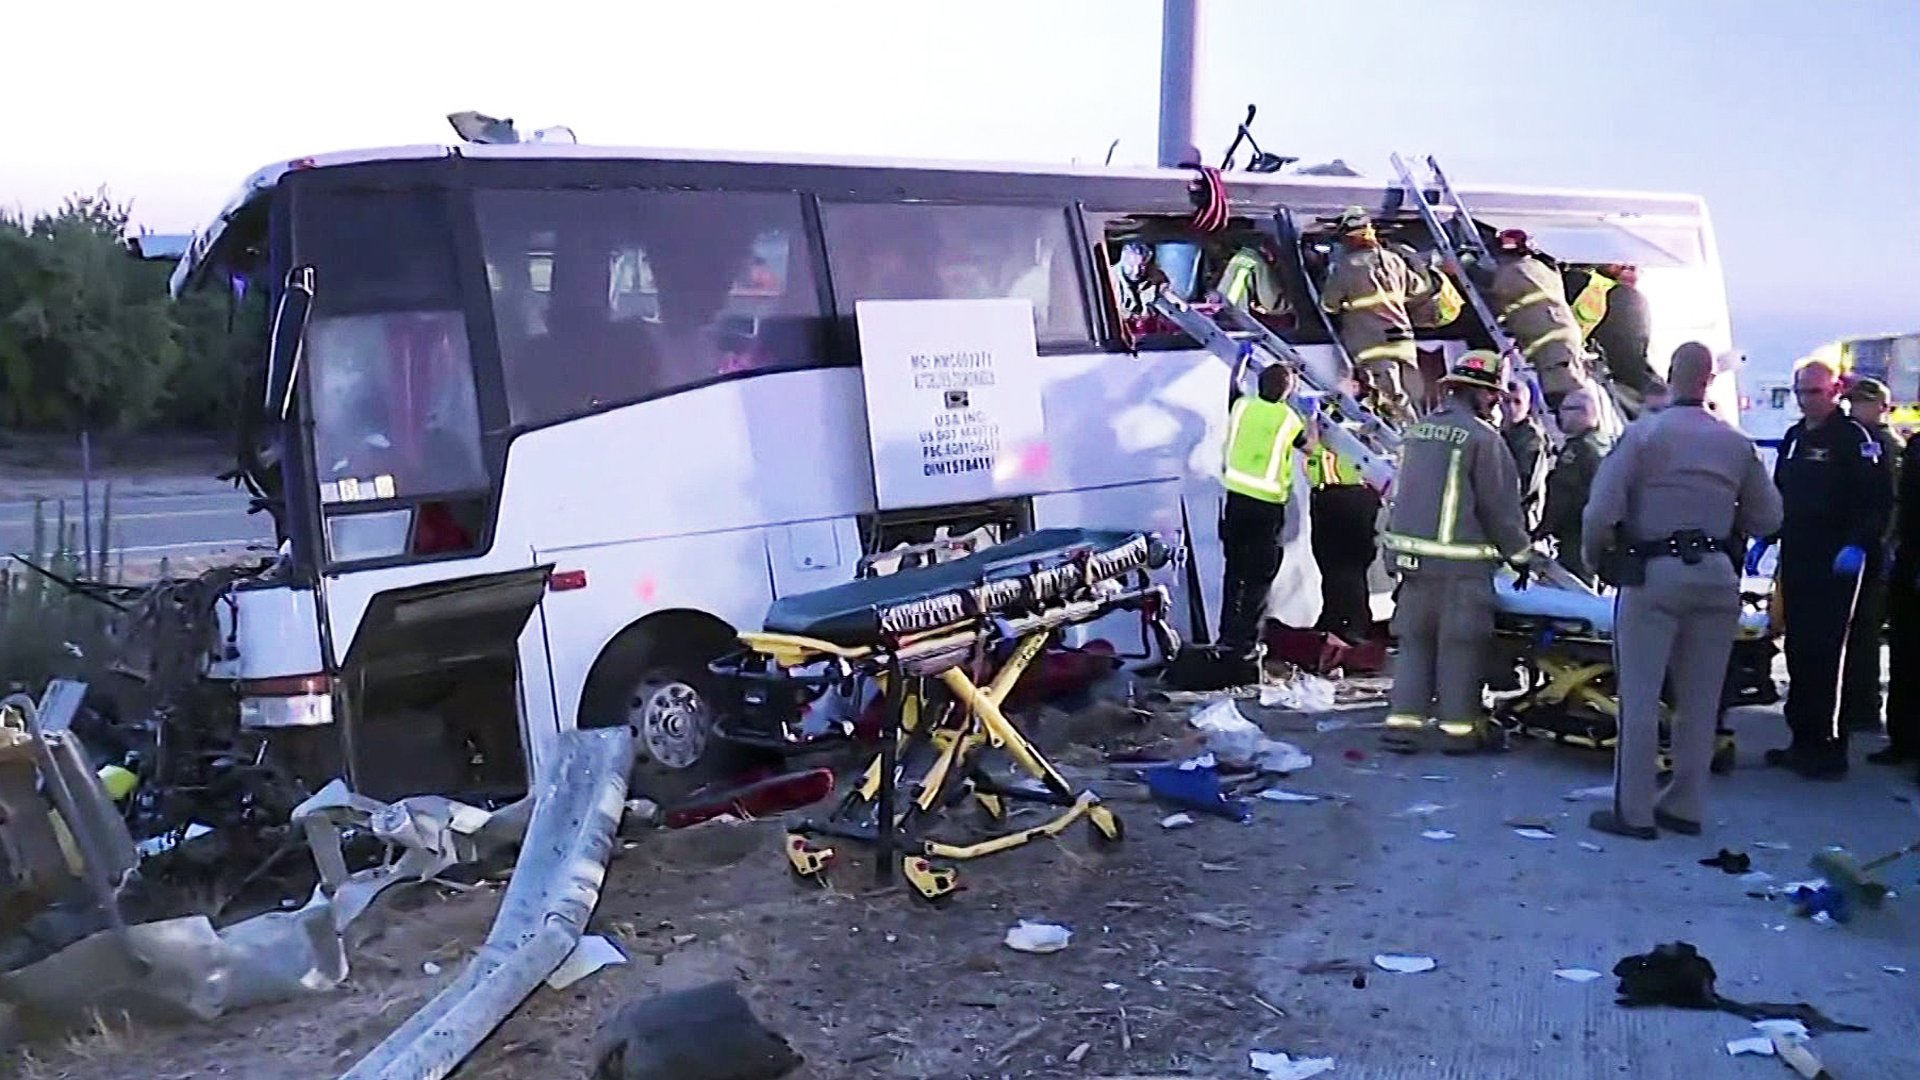 Authorities respond to a fatal bus crash in Merced County on Aug. 2, 2016. (Credit: KMPH via CNN)